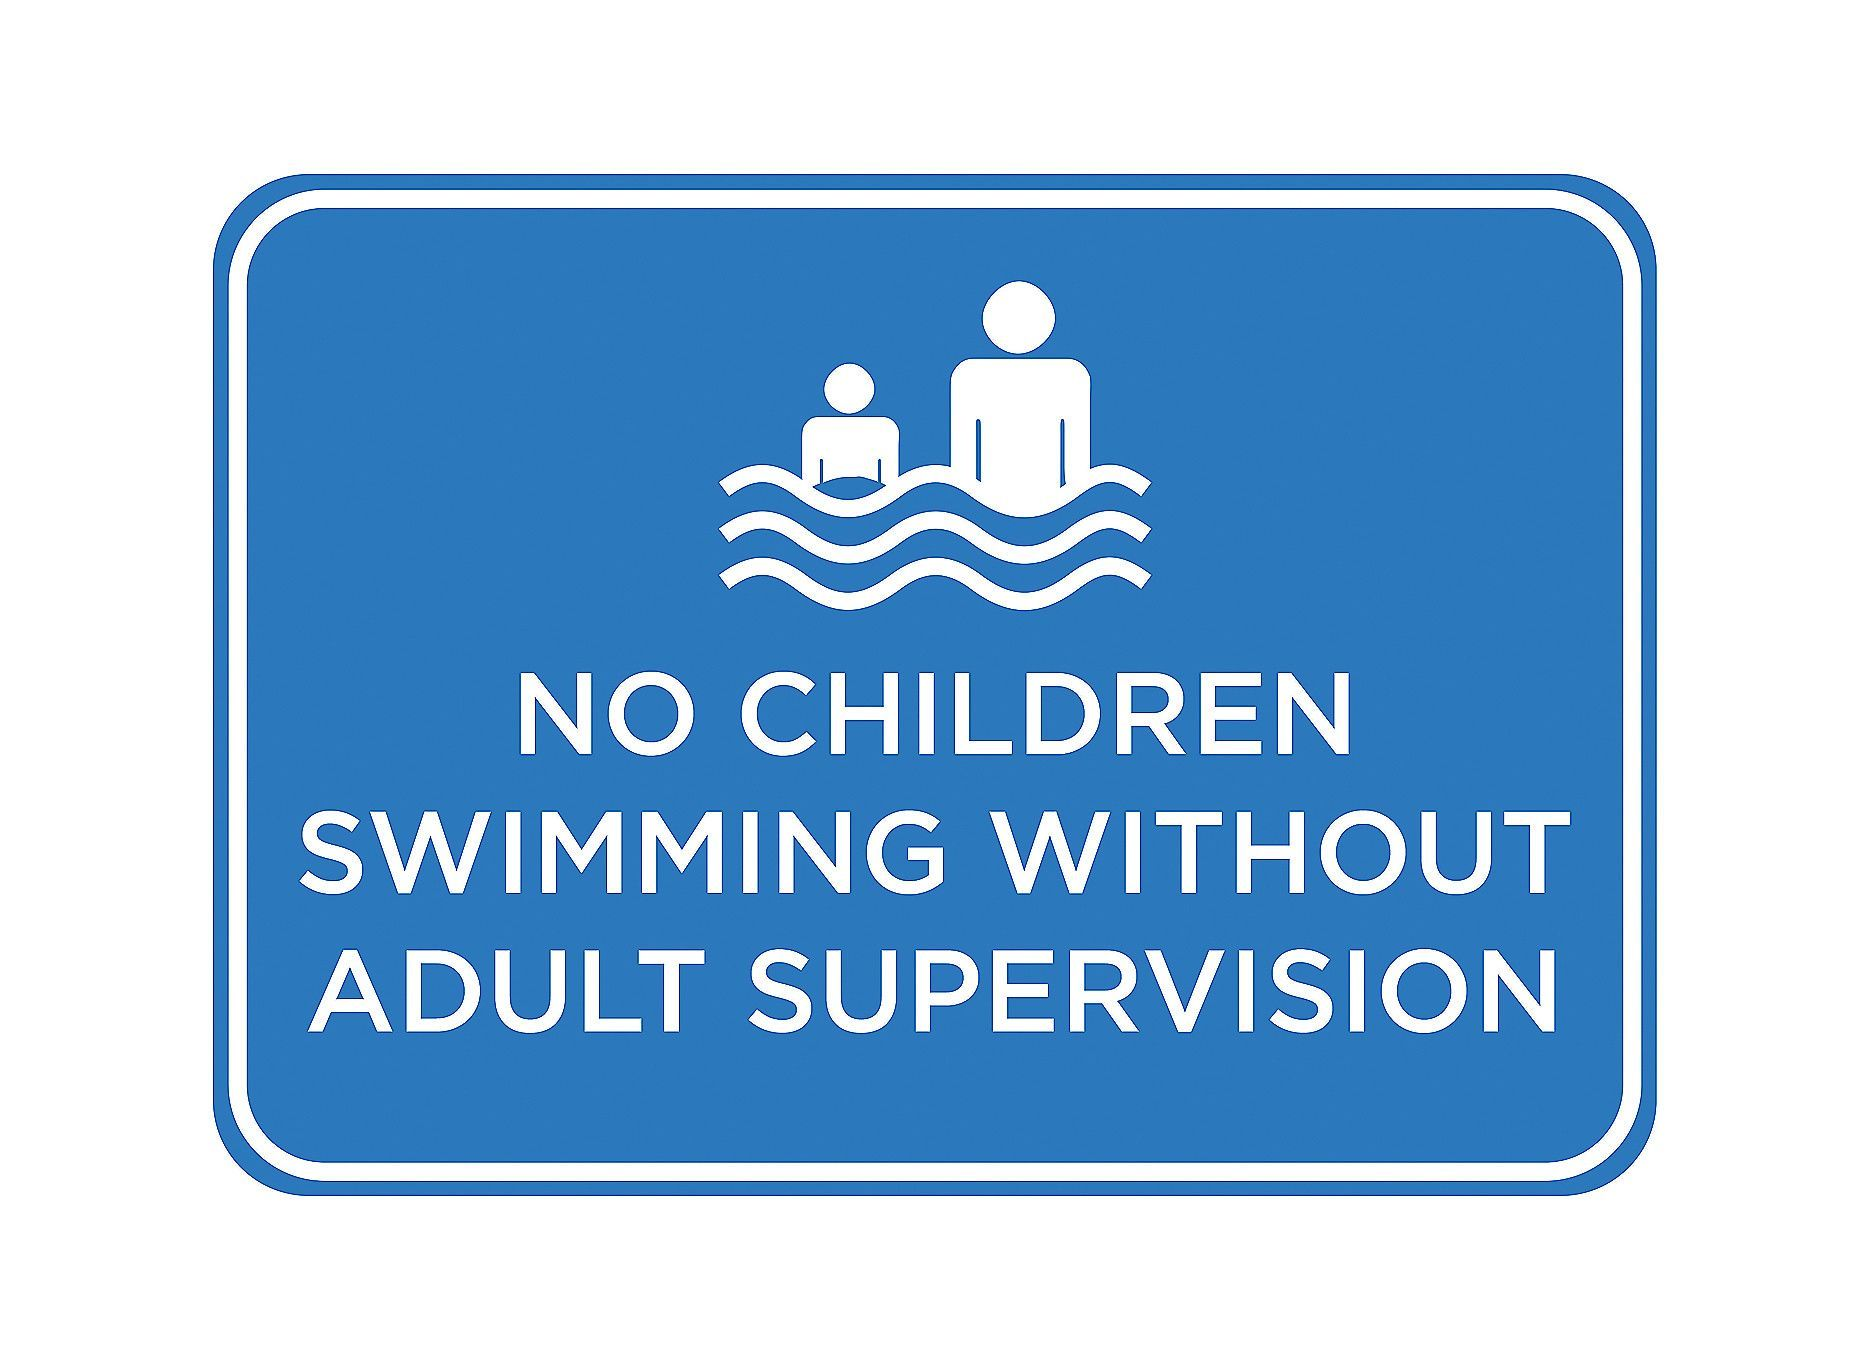 no children swimming out adult supervision swimming pool sign no children swimming out adult supervision swimming pool sign